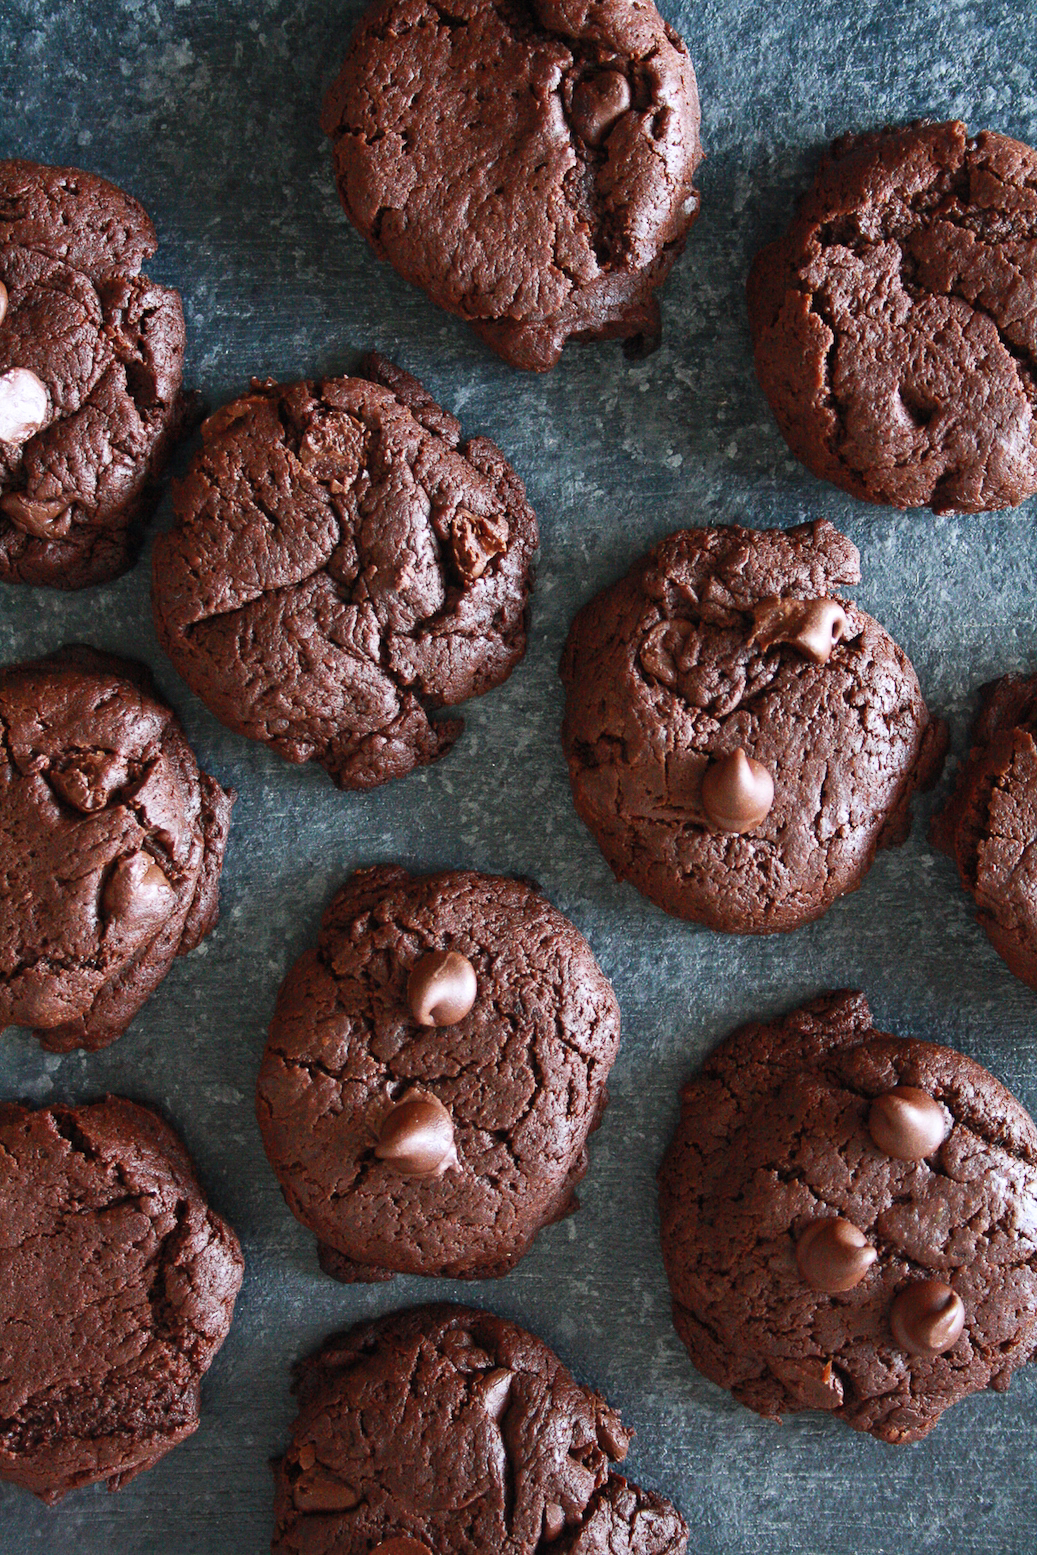 Dark, rich, fudgy, gluten-free double chocolate cookies made with buckwheat flour!